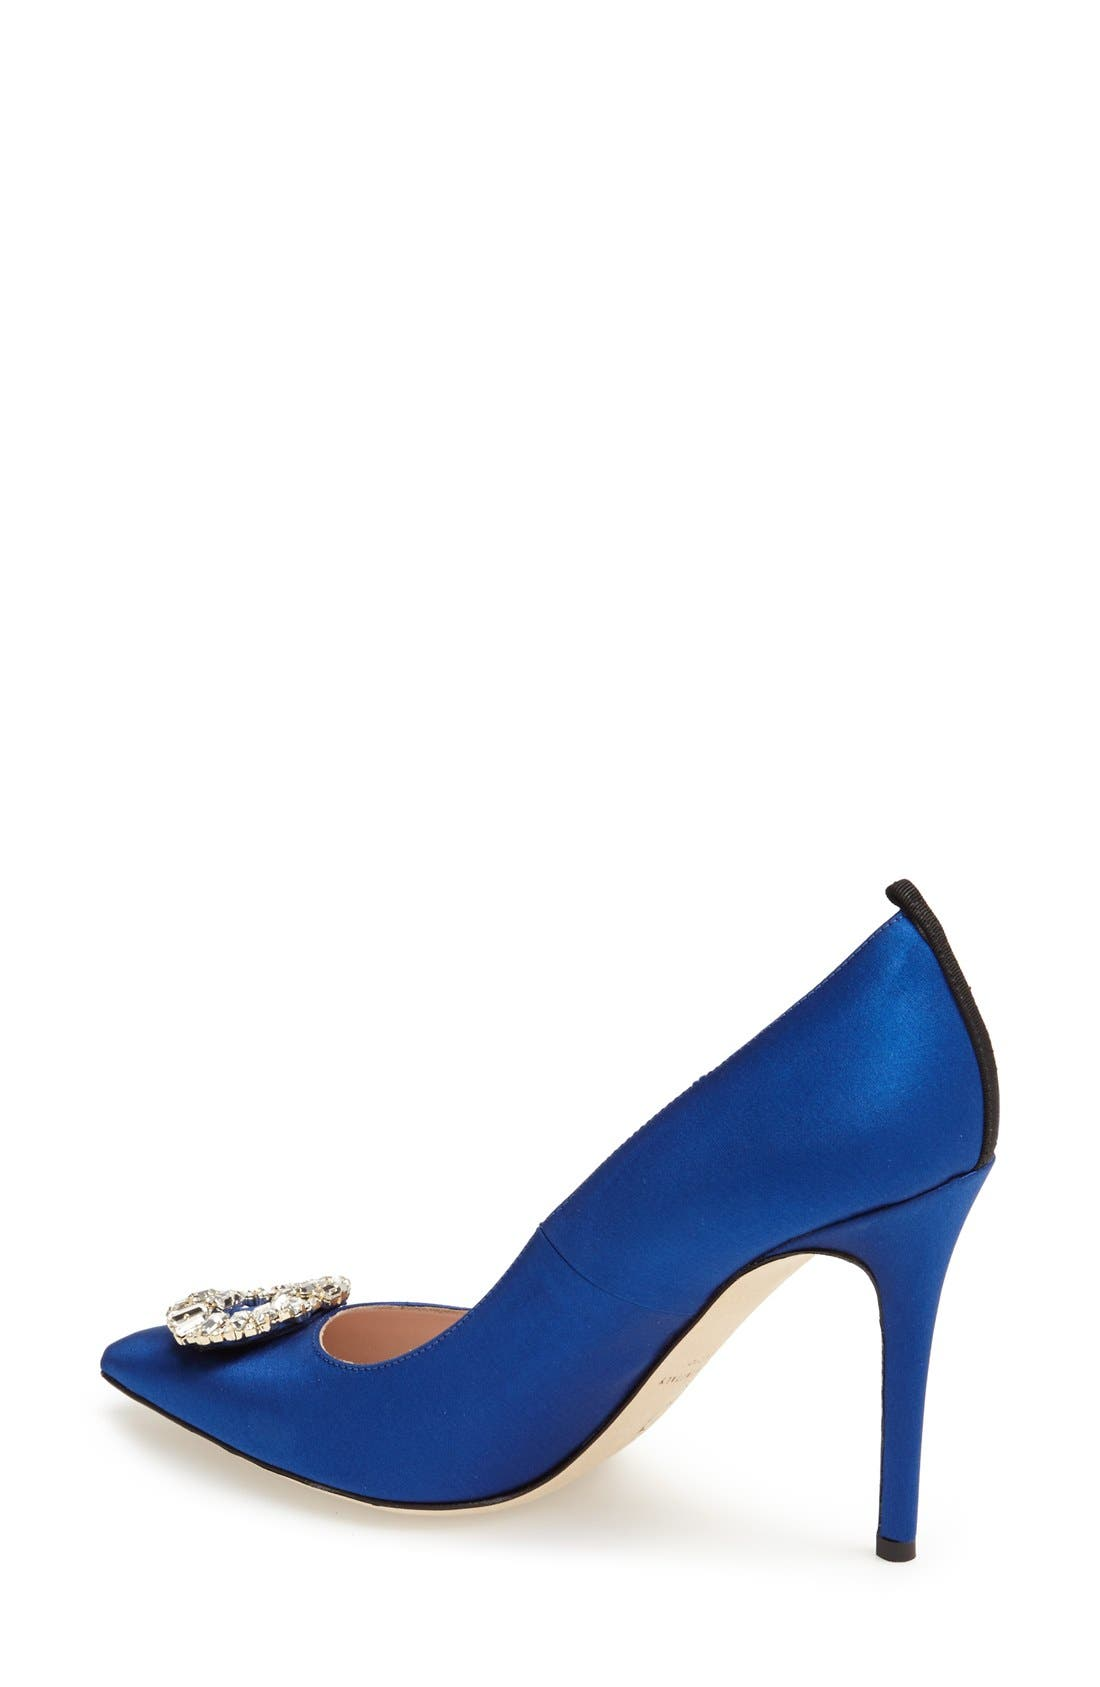 'Maddalena' Pointy Toe Pump,                             Alternate thumbnail 2, color,                             Blue Satin